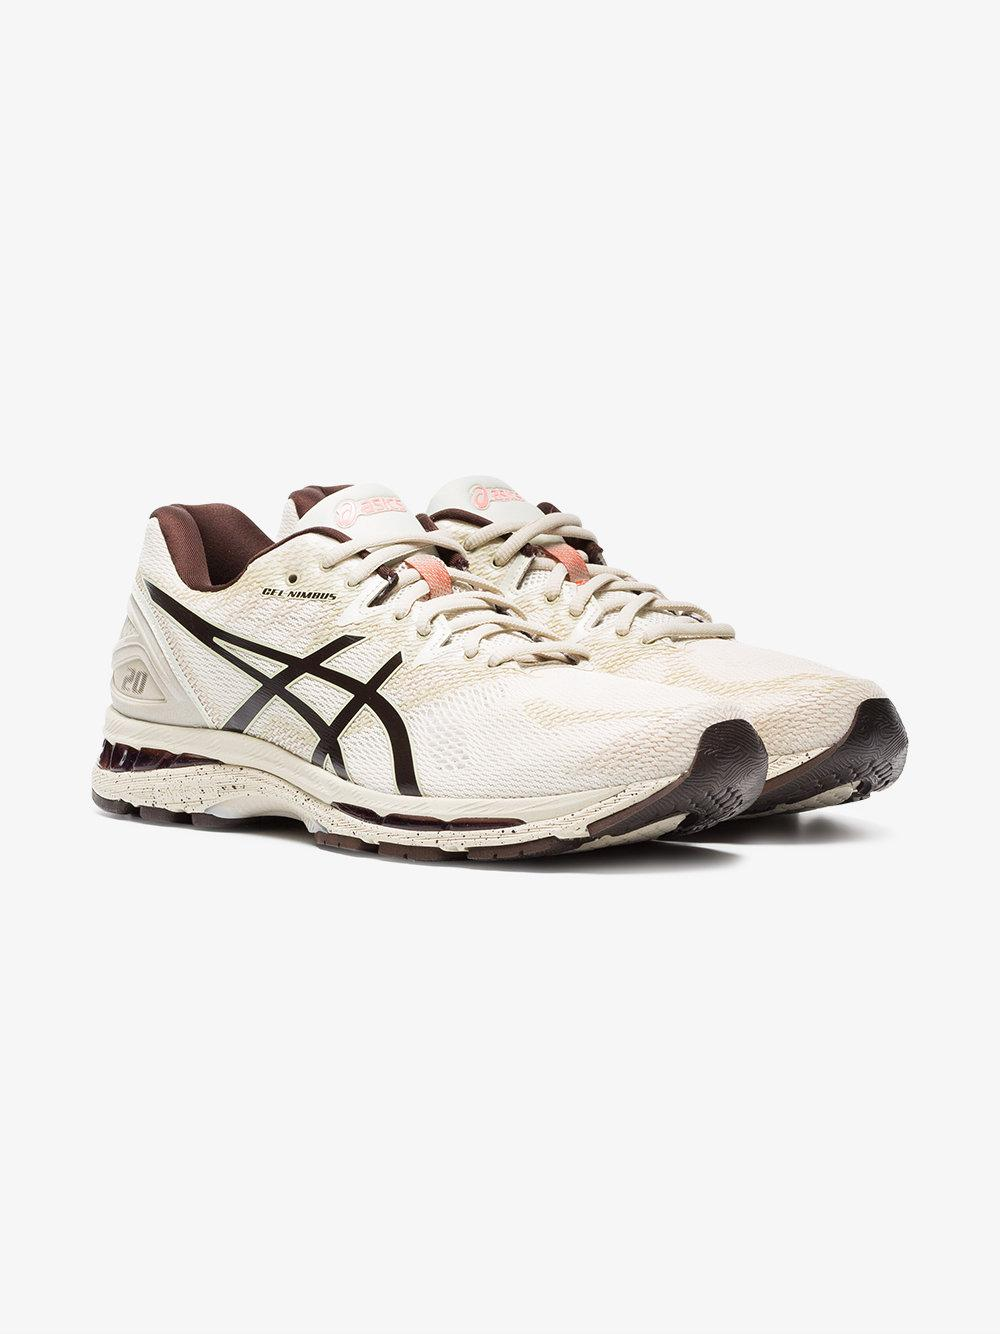 nude Gel Nimbus 20 lace-up sneakers - Nude & Neutrals Asics Find Great Cheap Online NCDMBVA5k